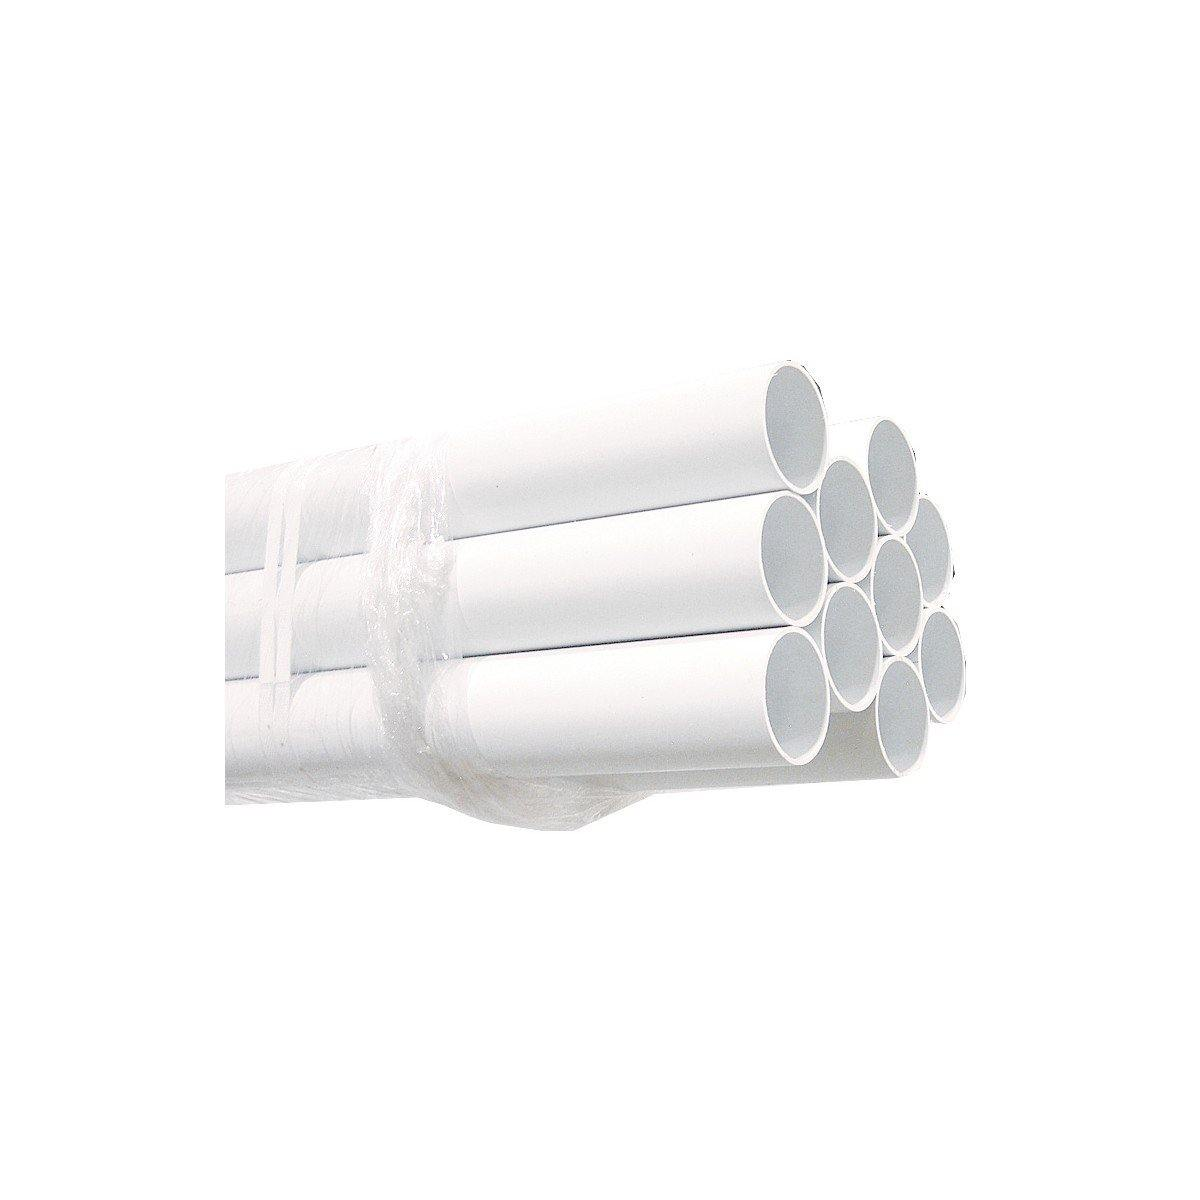 PVC Vacuum Pipe 2.5M - 8 Length